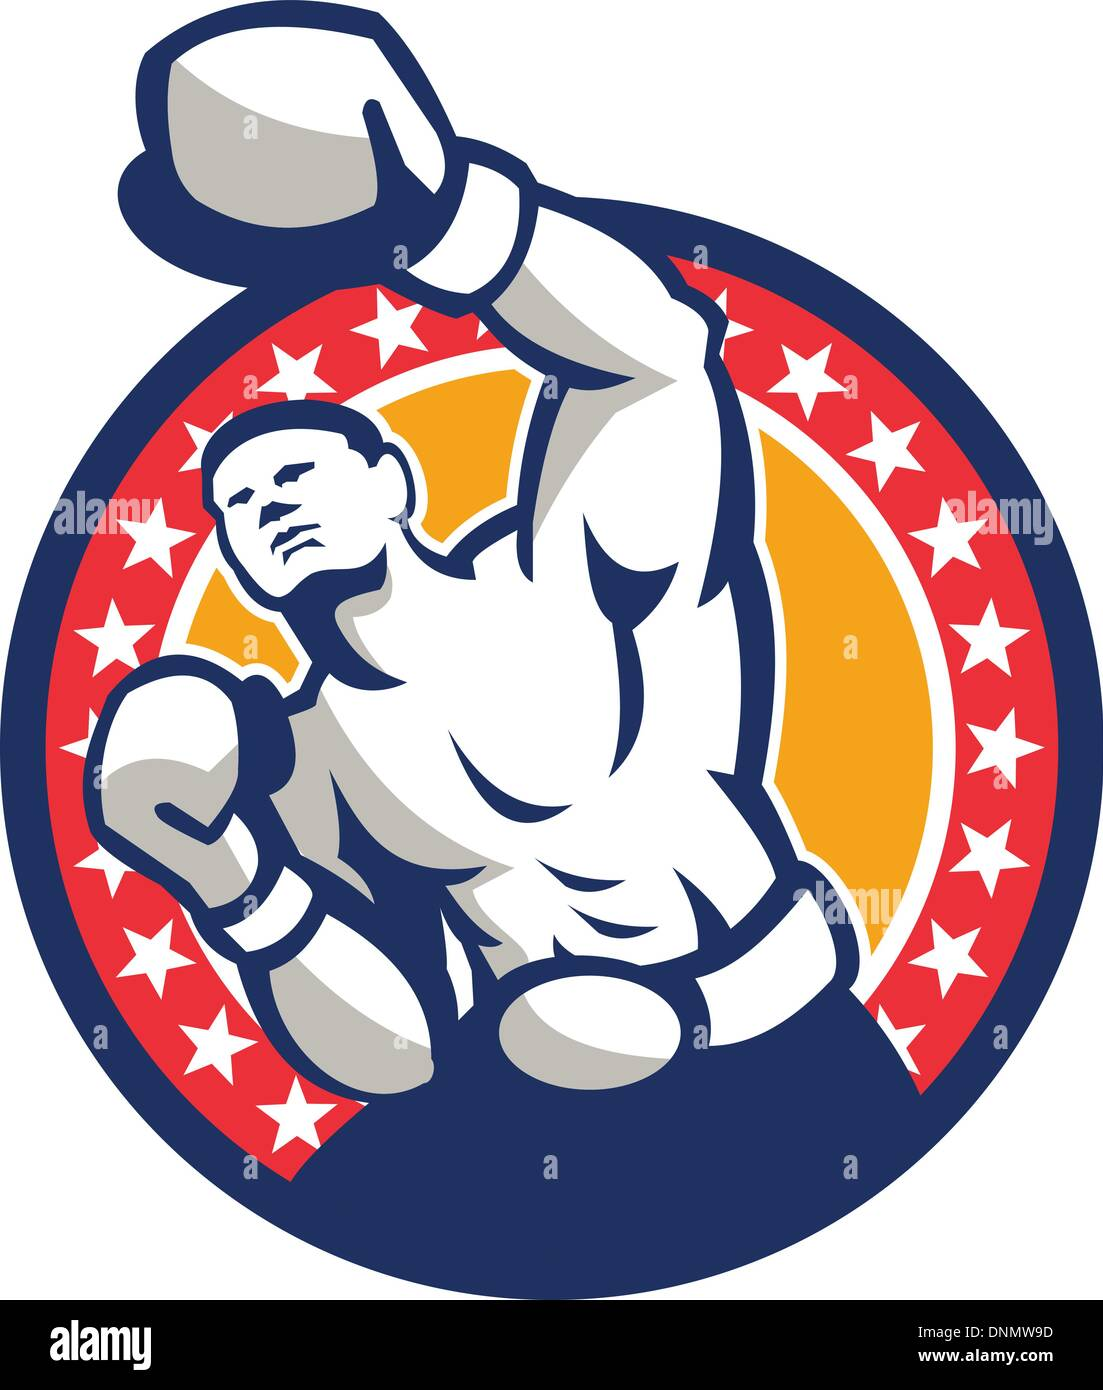 Illustration of a boxer jabbing punching set inside circle with stars around done in retro style - Stock Vector